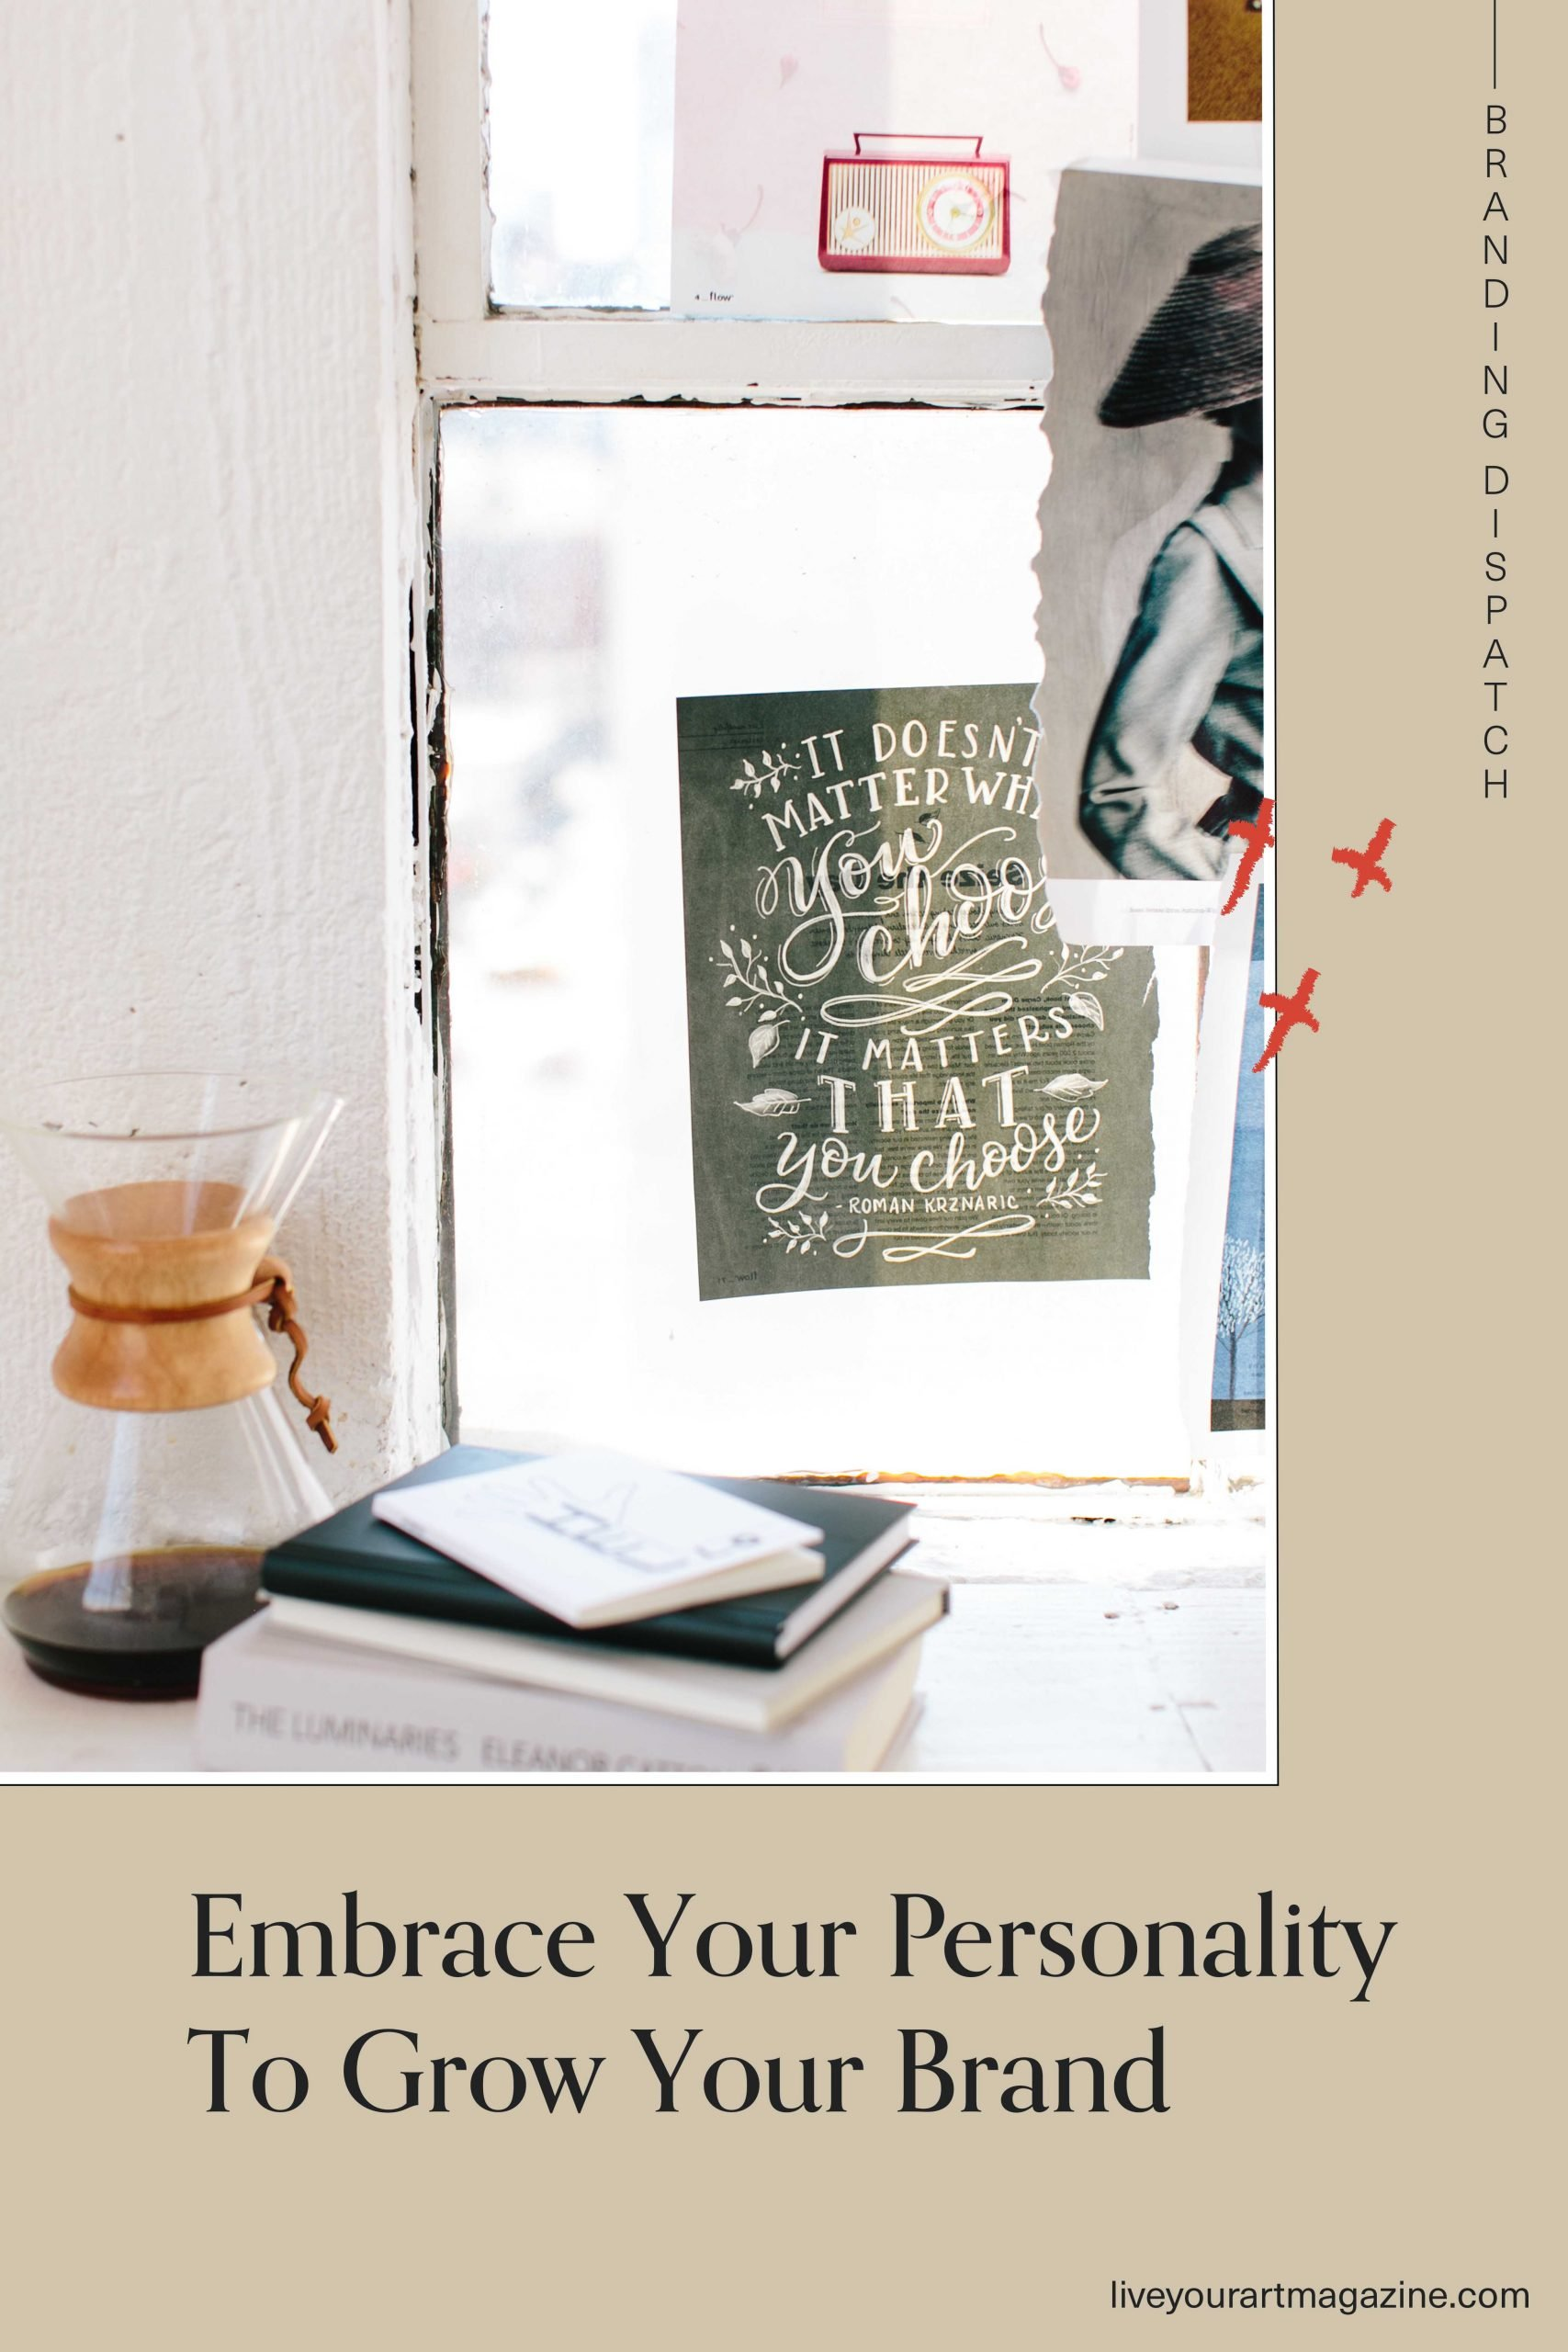 Embrace your personality to grow your brand